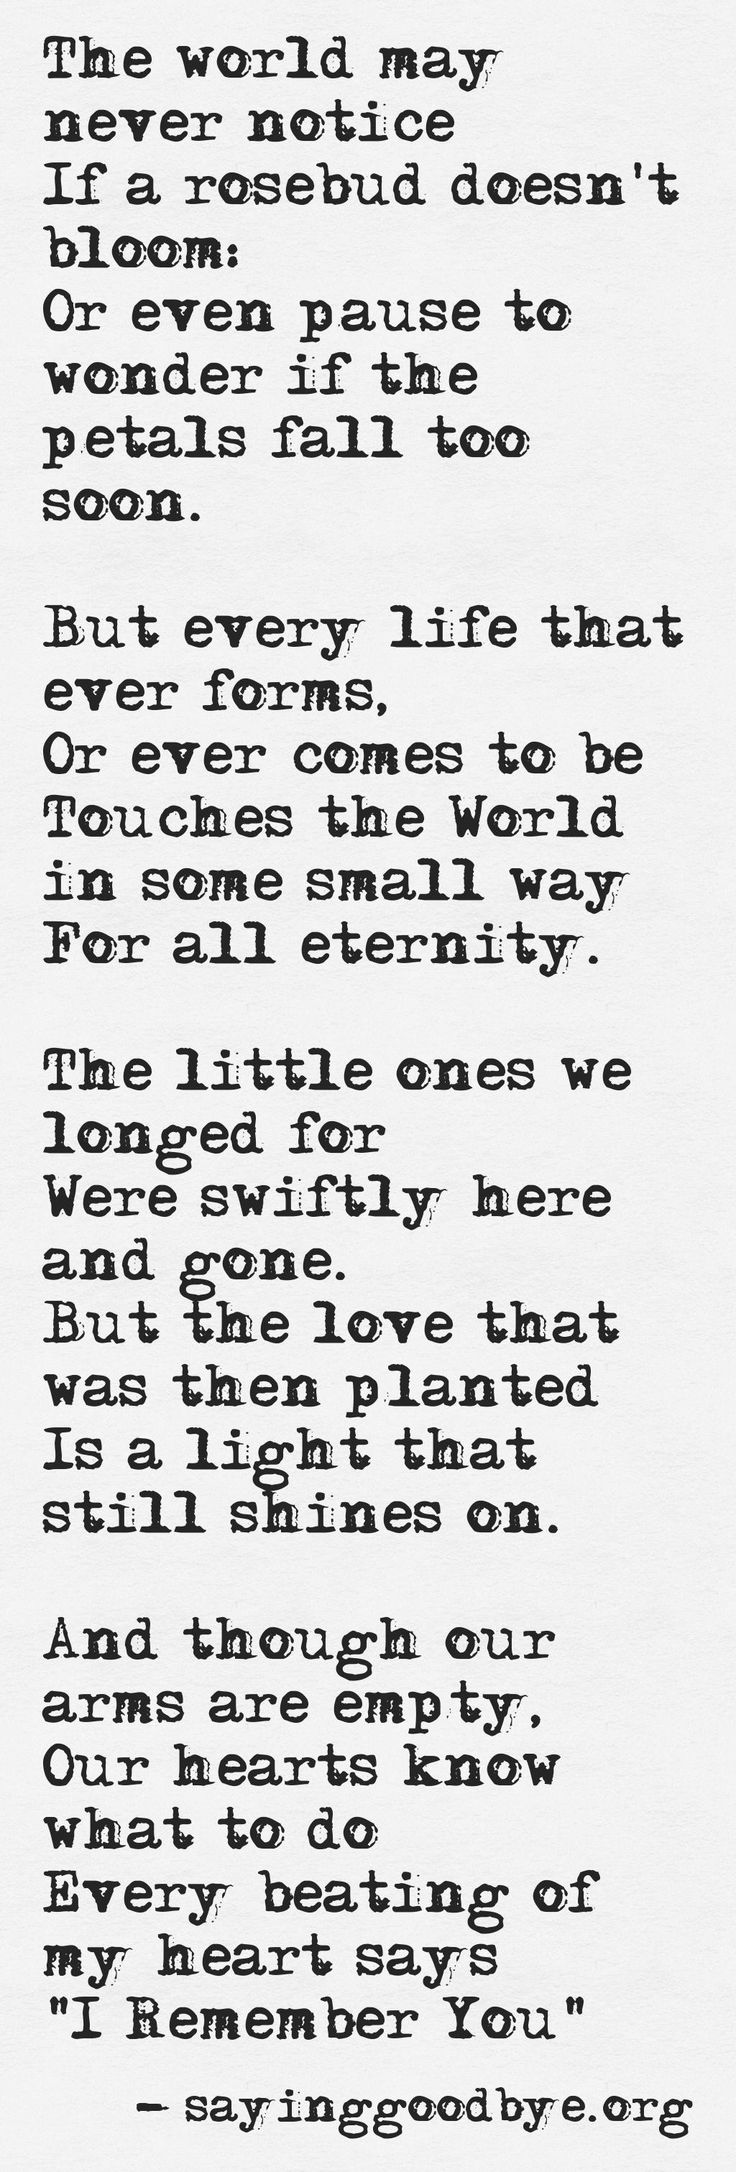 "The little ones we longed for were here and quickly gone but the love that was then planted is a light that still shines on. And though our arms are empty our hearts know what to do. Every beating of my heart says ""I Remember You!"" miscarriage quotes"